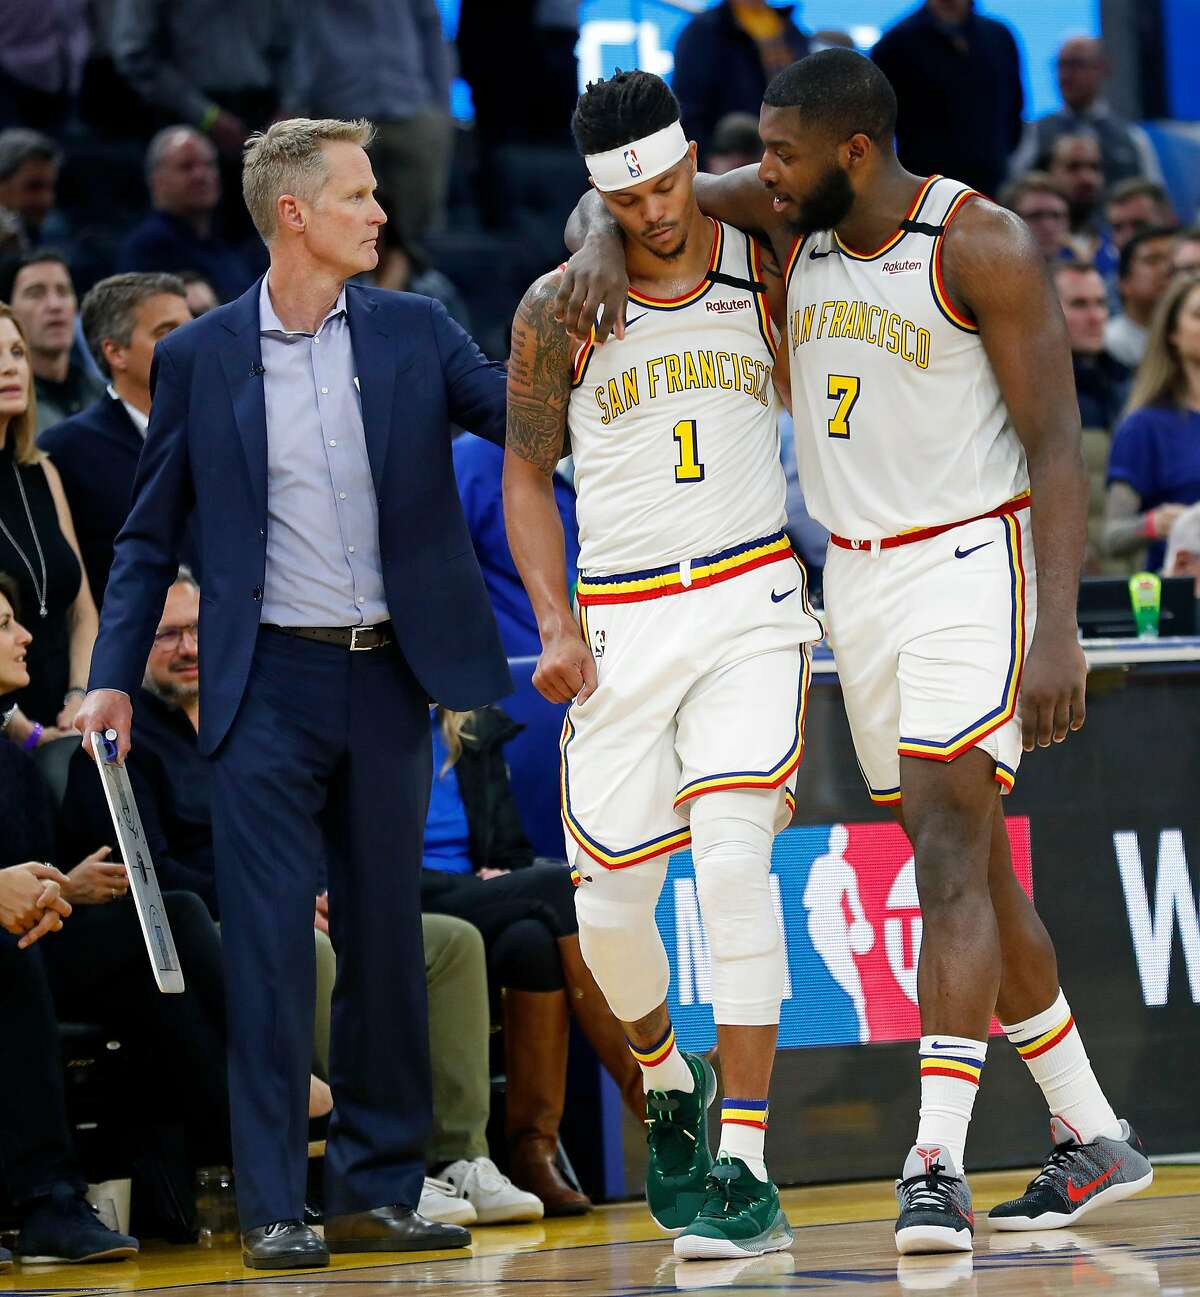 Golden State Warriors' Damion Lee is consoled by Eric Paschall and head coach Steve Kerr in 4th quarter during Toronto Raptors' 121-113 win in NBA game at Chase Center in San Francisco, Calif., on Thursday, March 5, 2020.